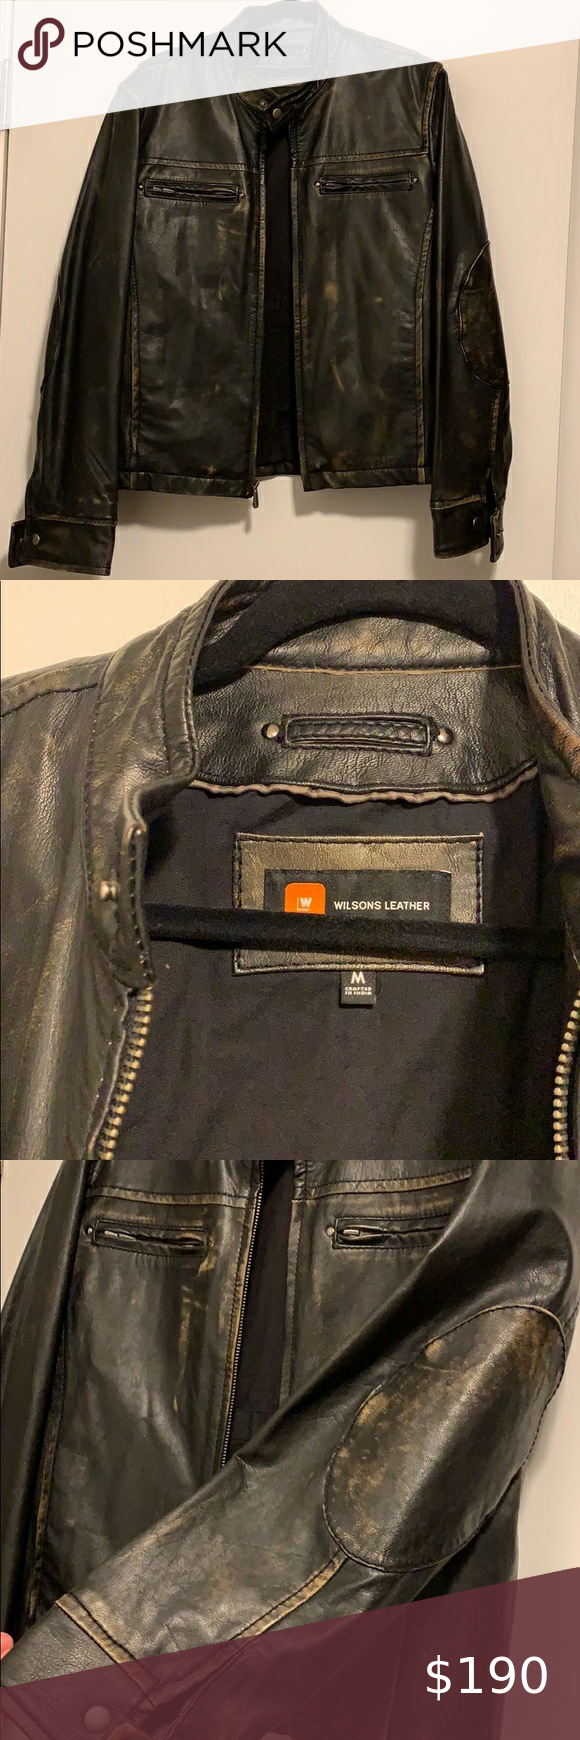 Mens Wilson Leather Jacket In 2020 Wilsons Leather Leather Jacket Wilsons Leather Jacket [ 1740 x 580 Pixel ]